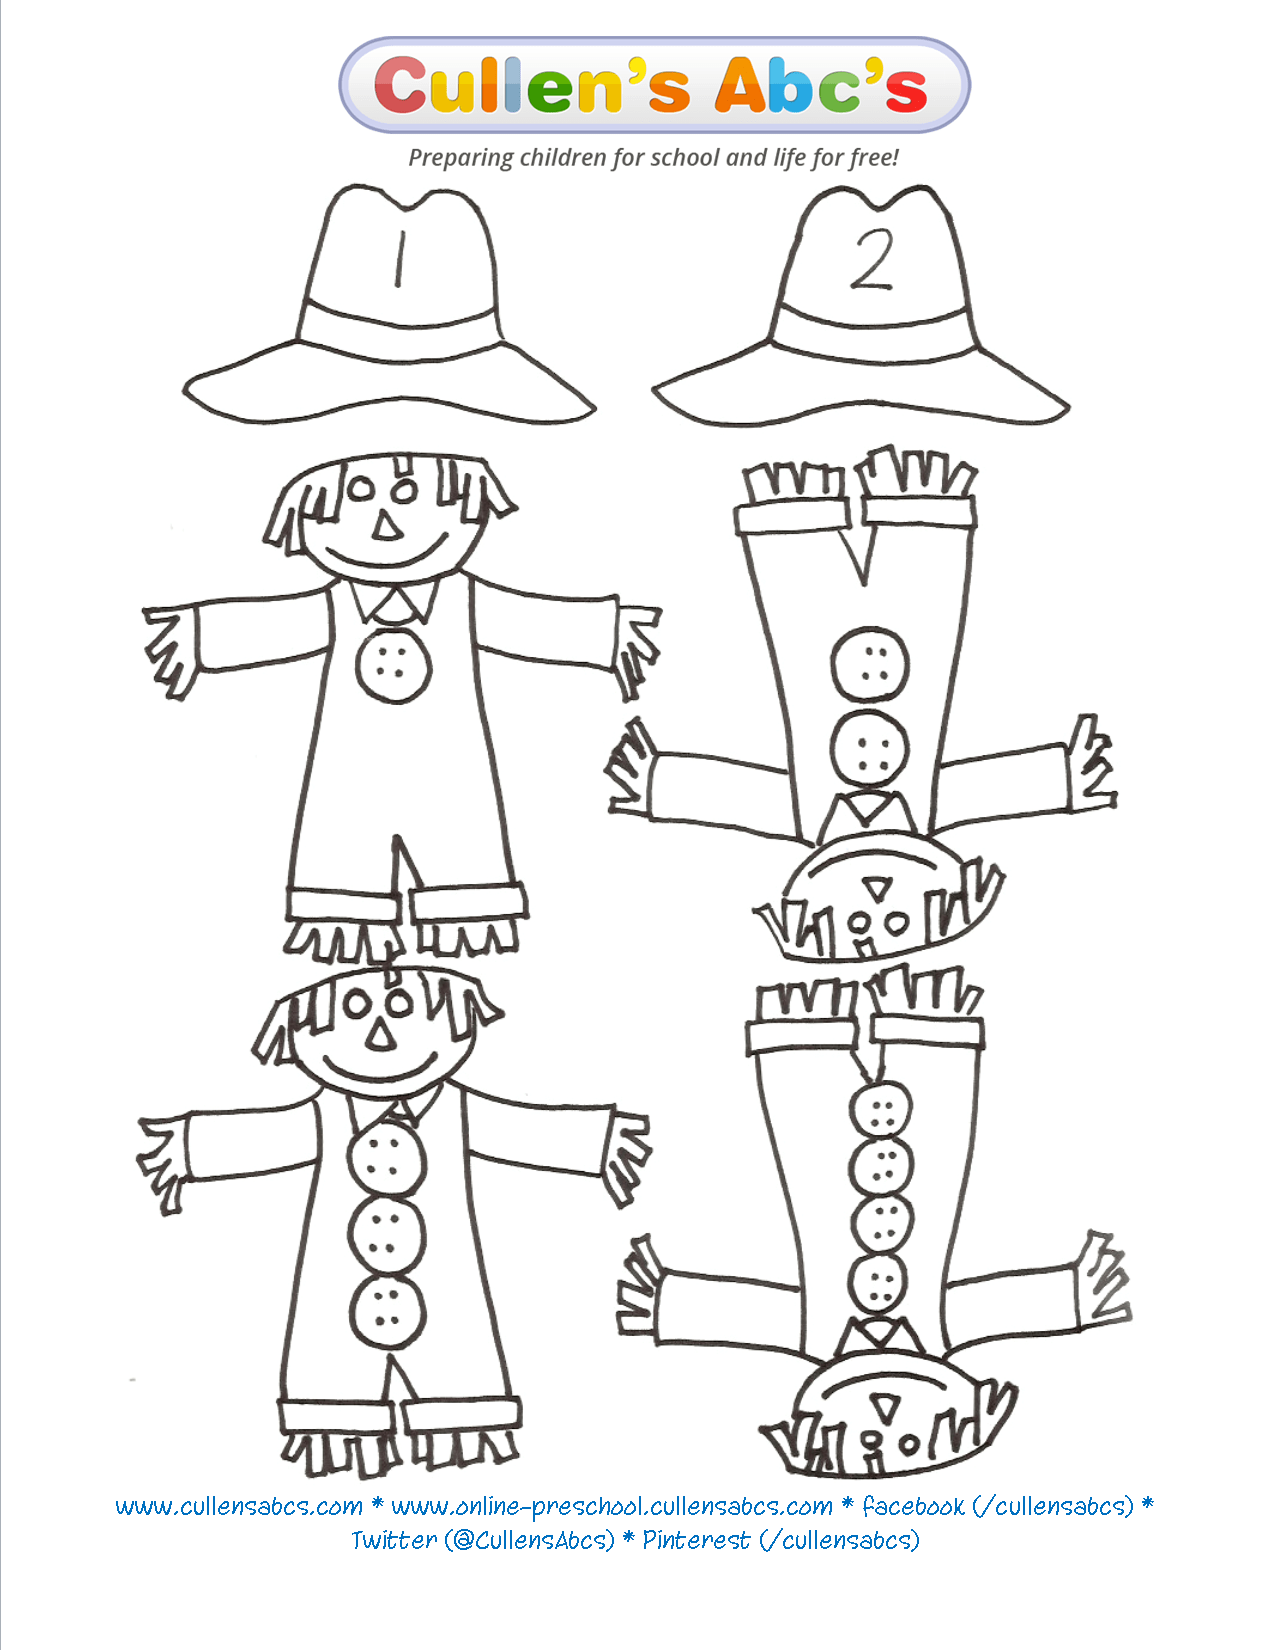 Scarecrow Matching Game Is A Great Way To Work On Counting One To One Correspondence And Number